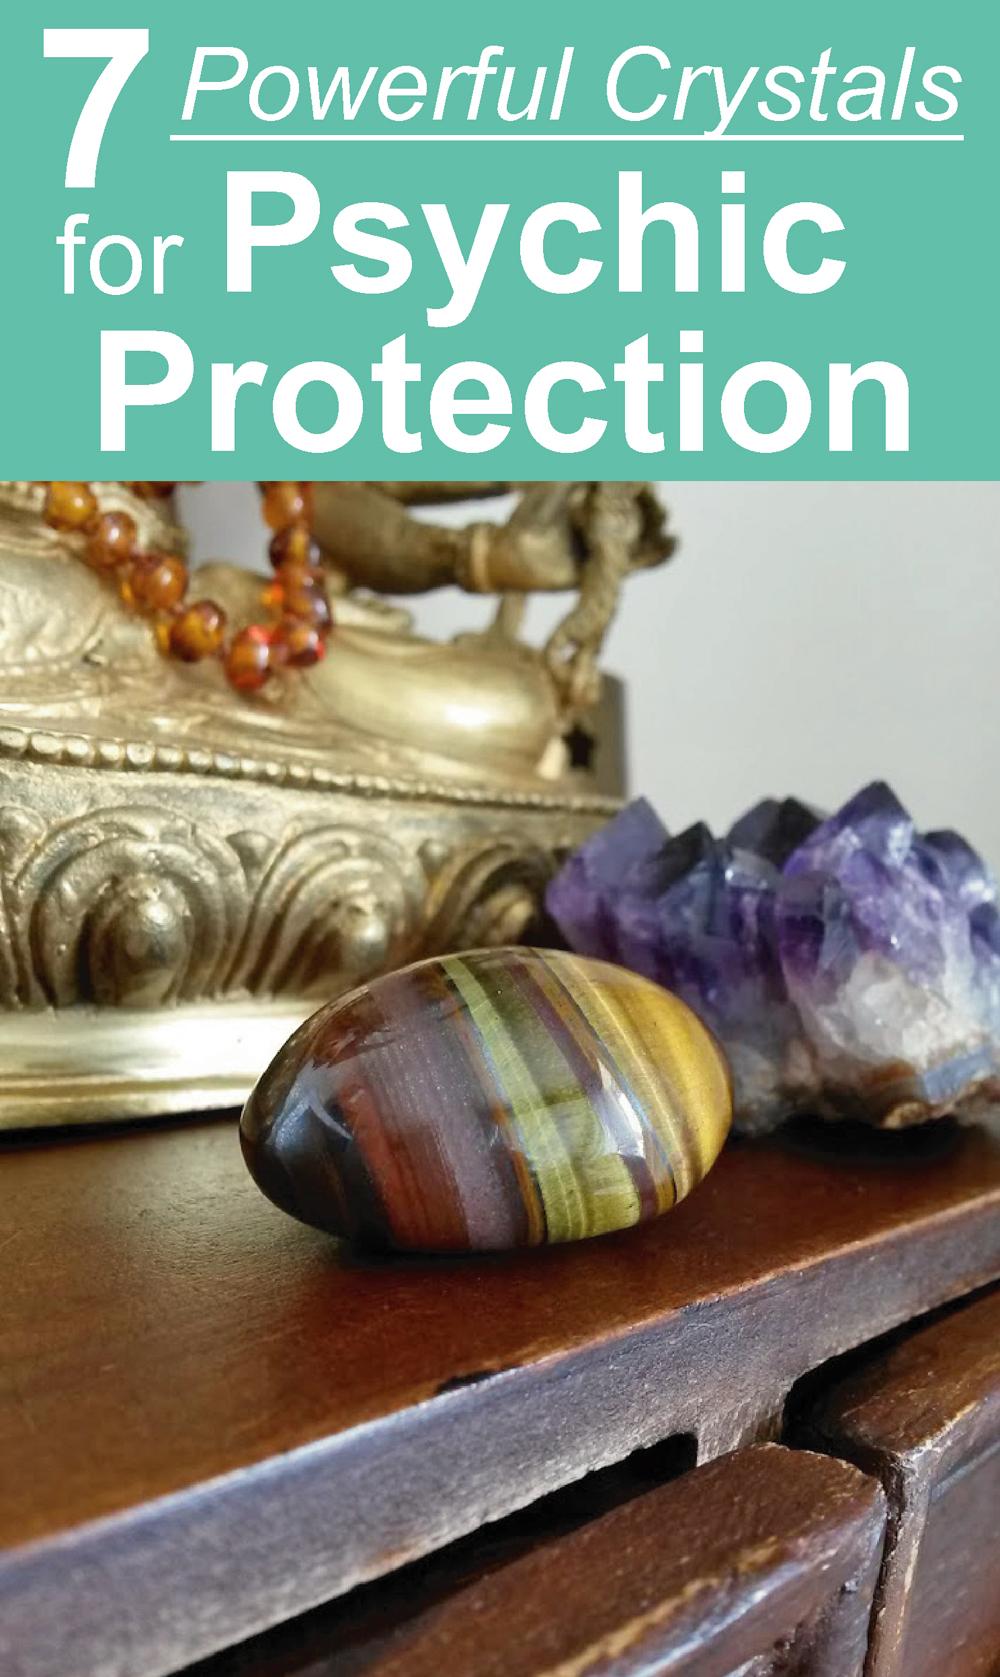 Discover seven powerful crystals for Psychic Protection